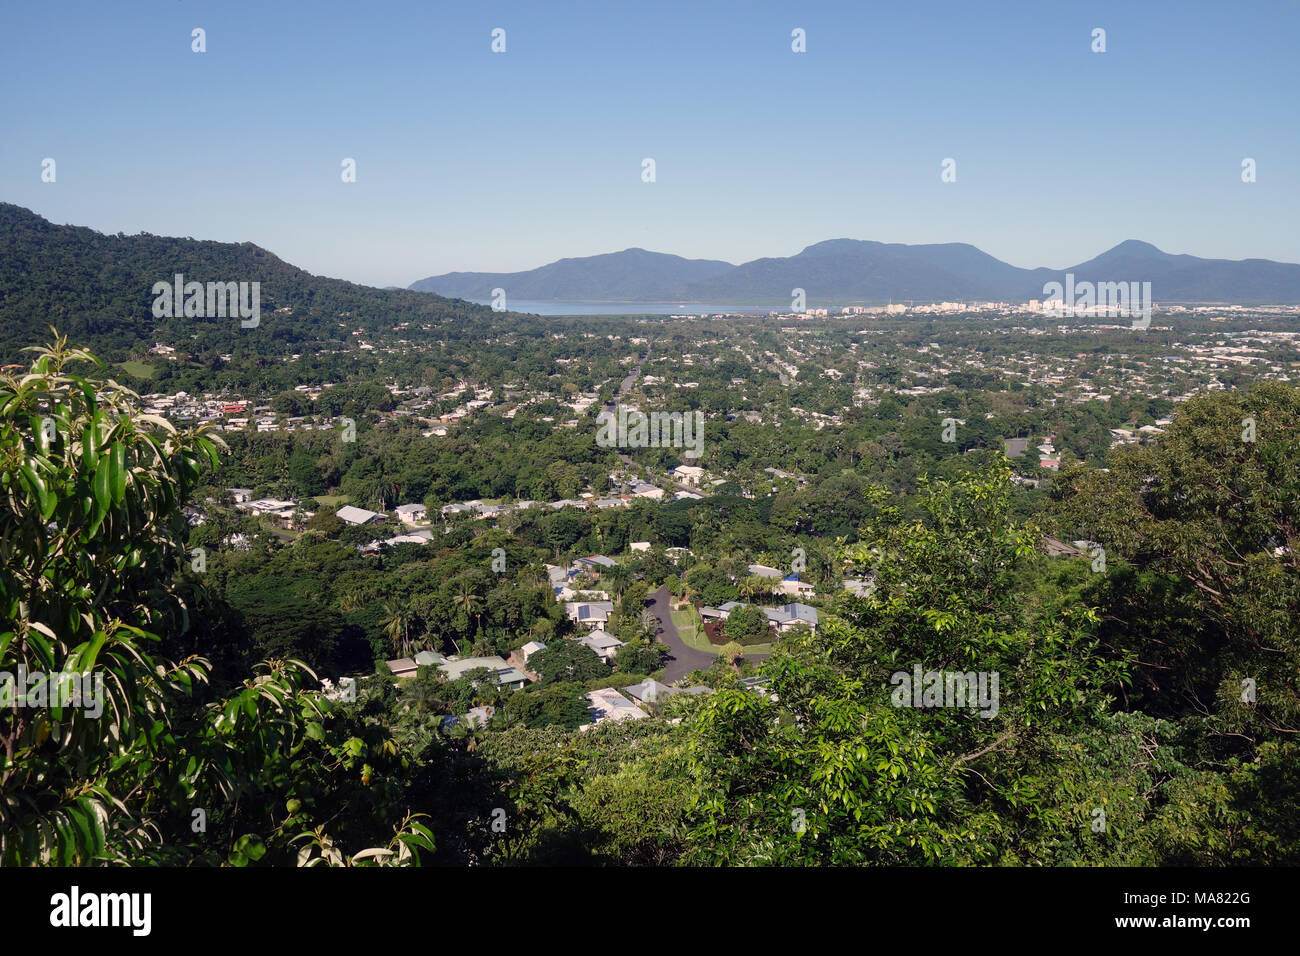 View over leafy suburbs and city from Green Arrow walking track up Mt Whitfield, Cairns, Queensland, Australia. No PR - Stock Image